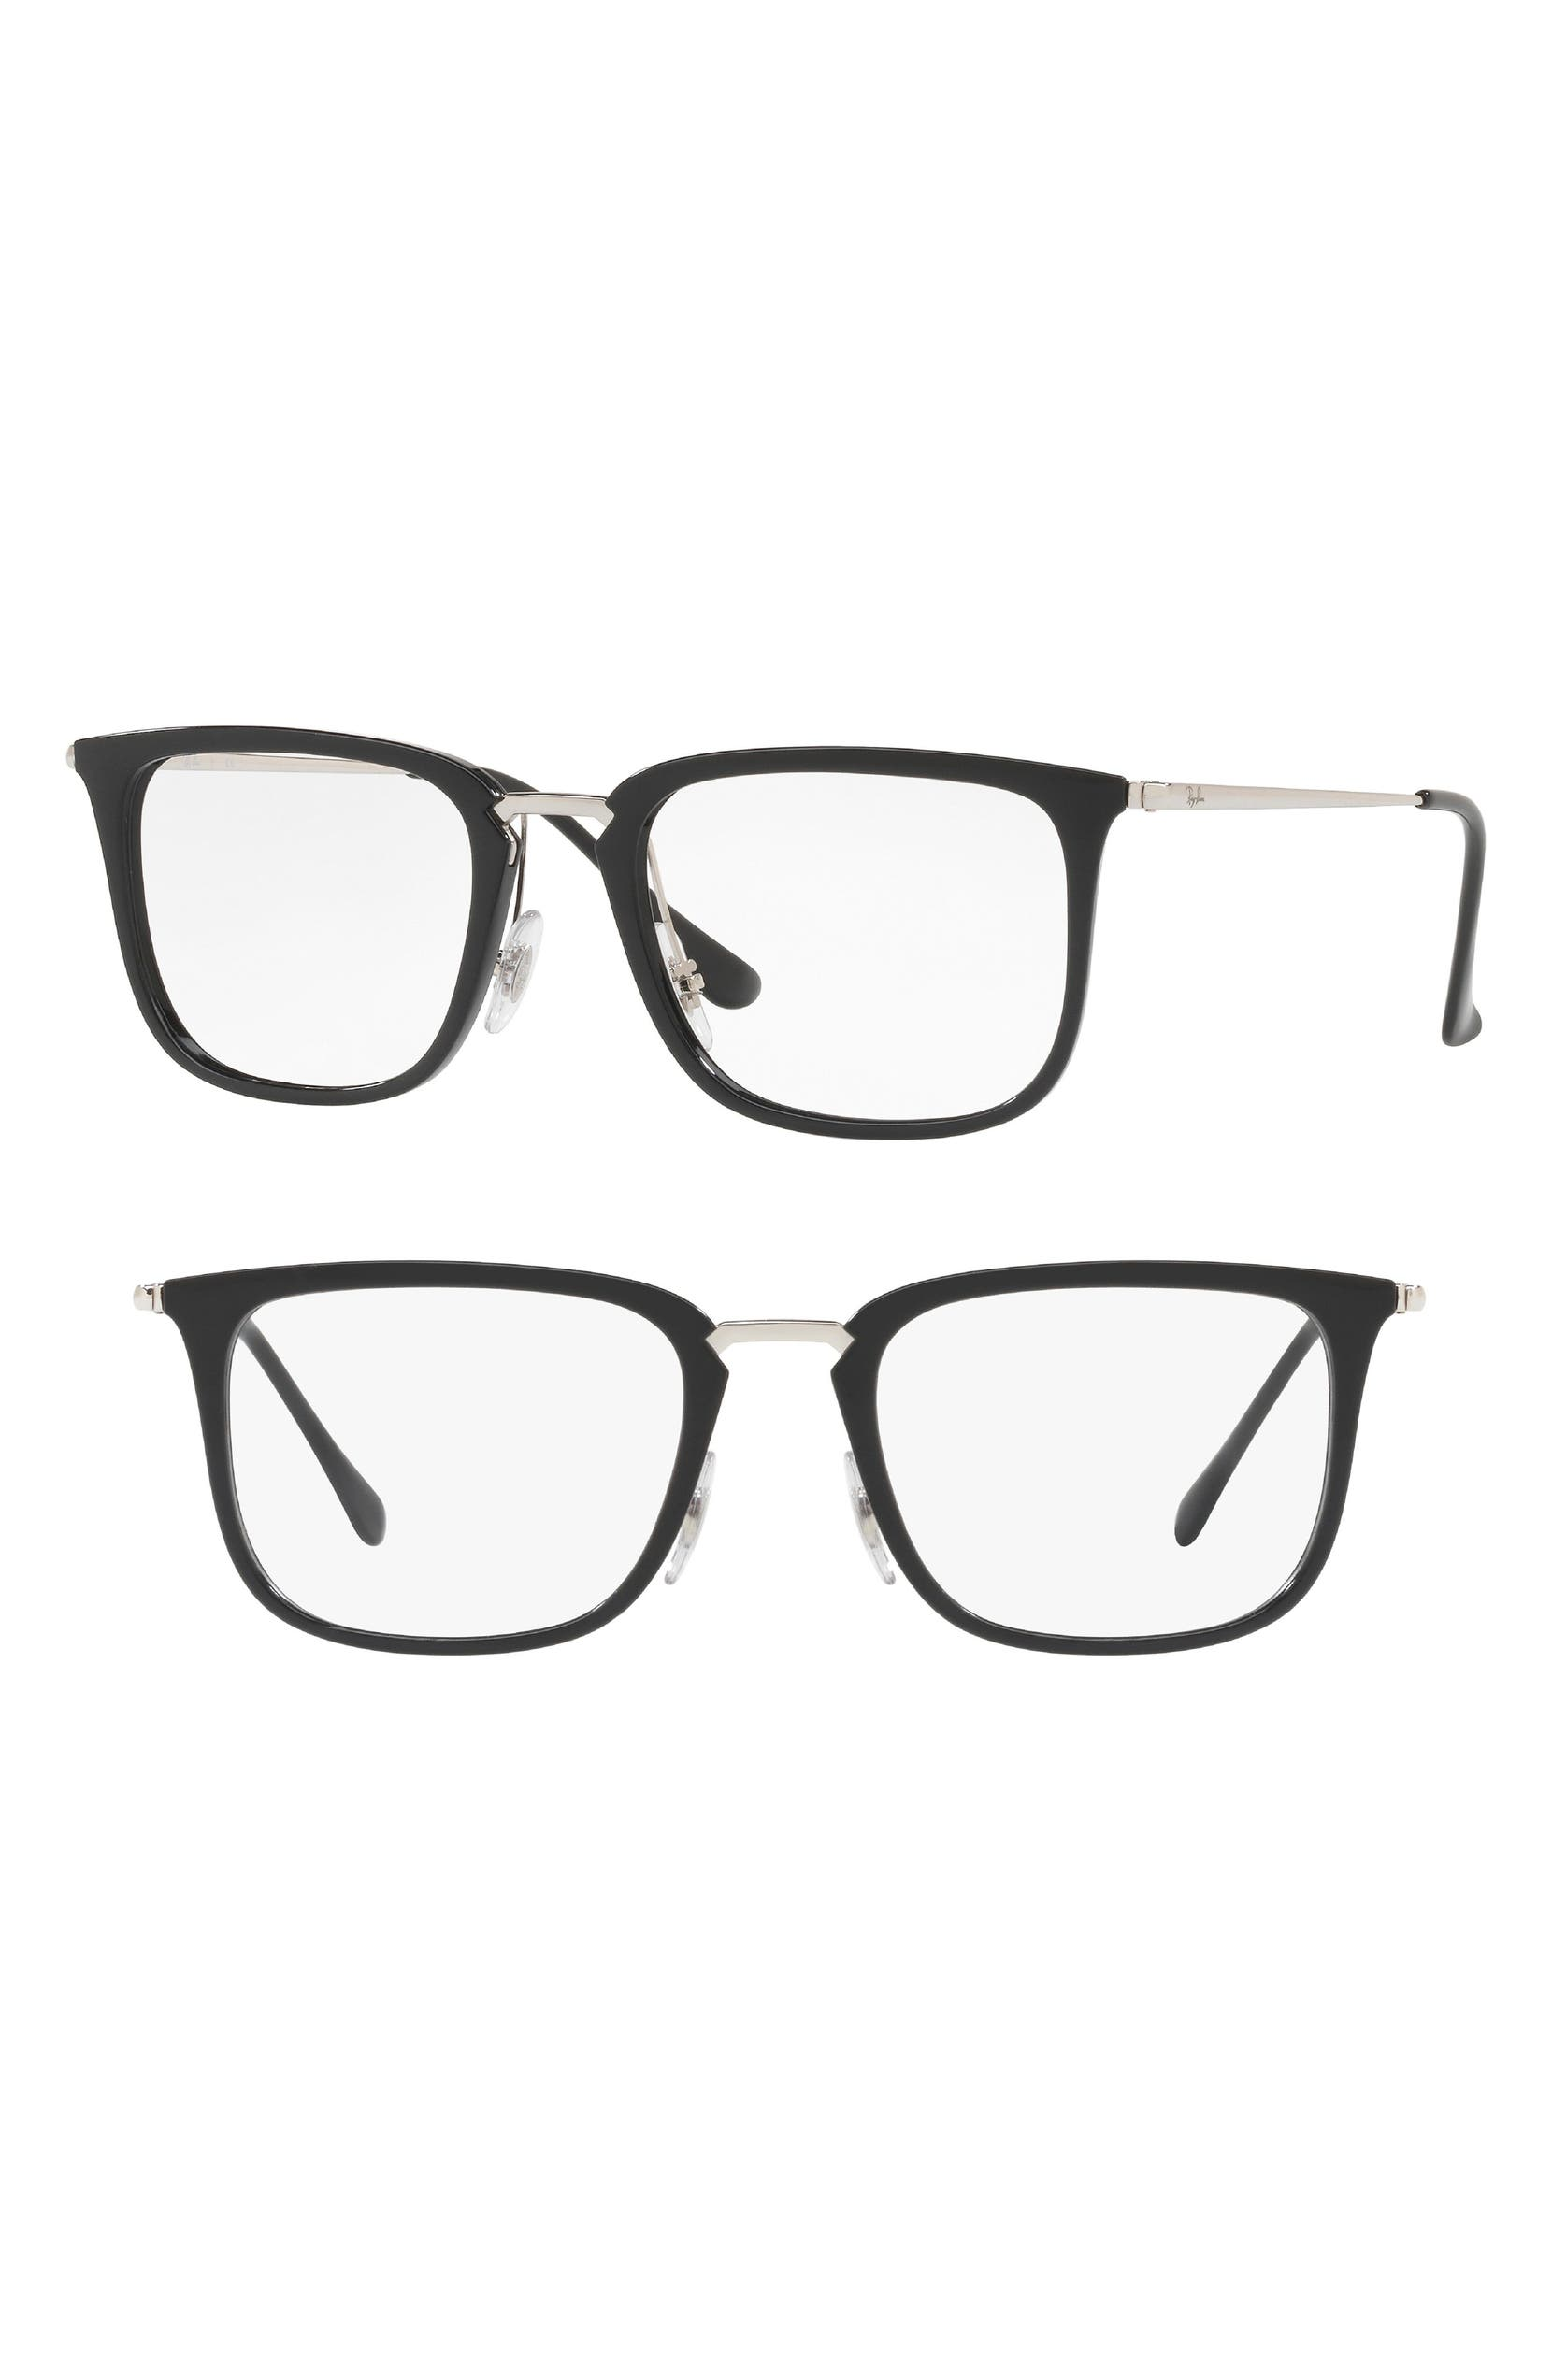 14add213bf9 Ray-Ban 7141 52mm Optical Glasses